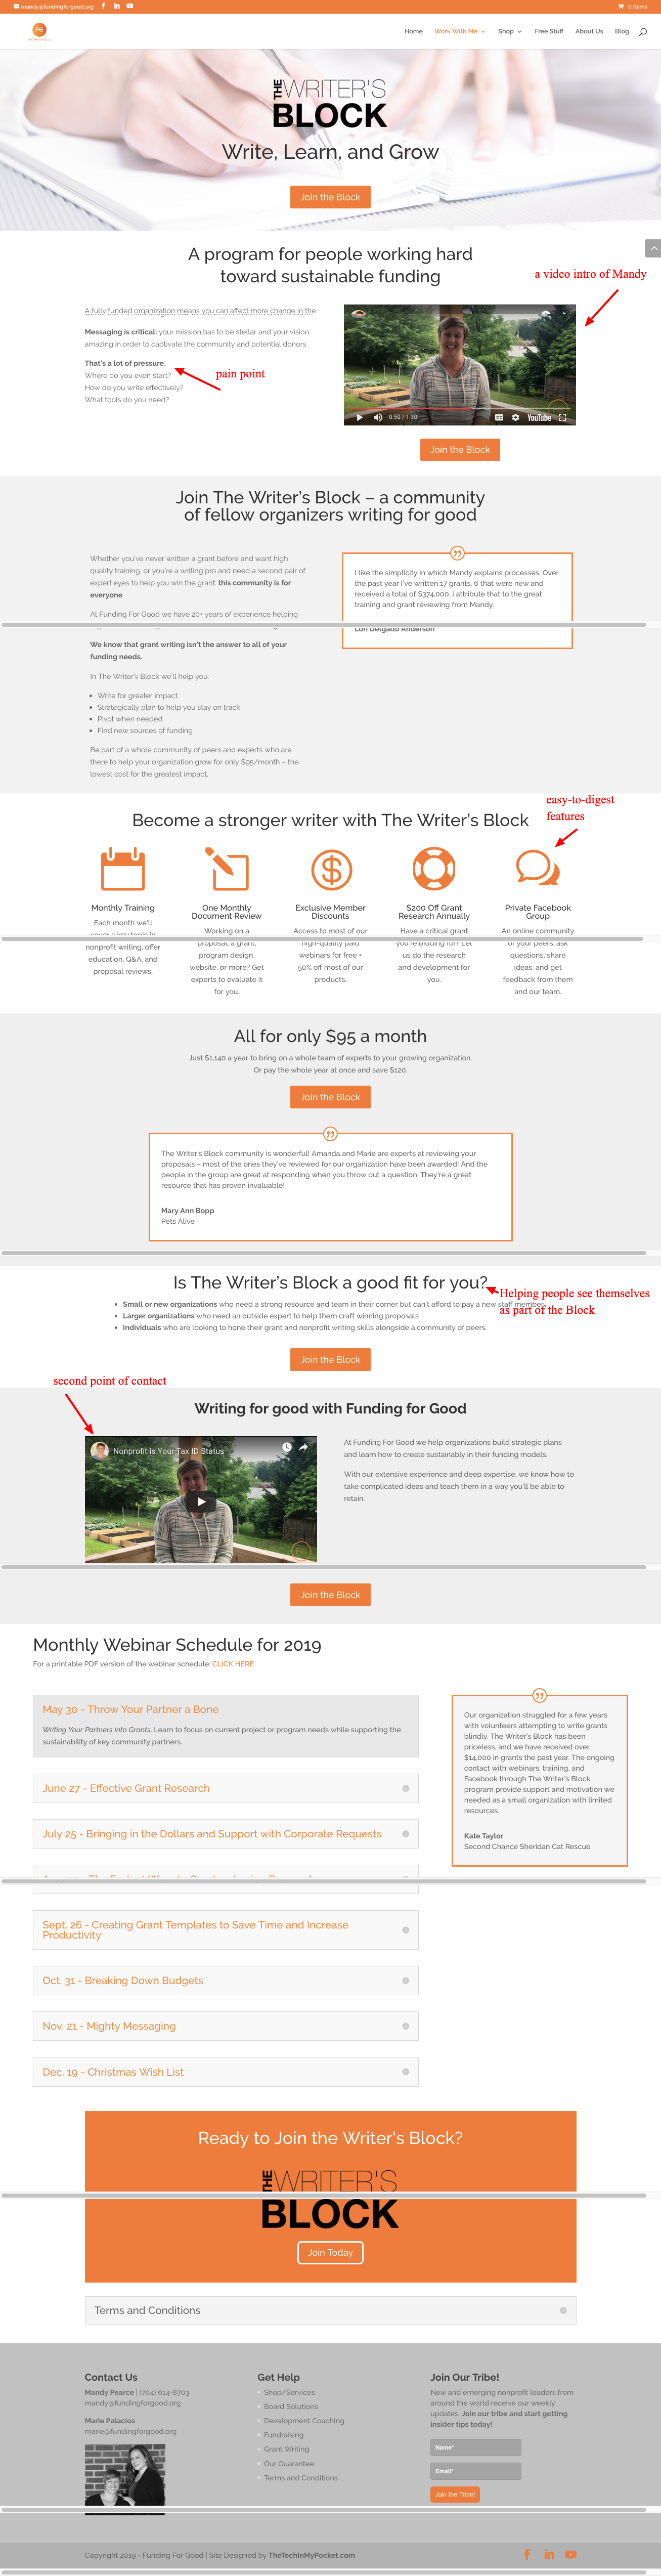 The Writer s Block   Funding for Good (1) (1).png